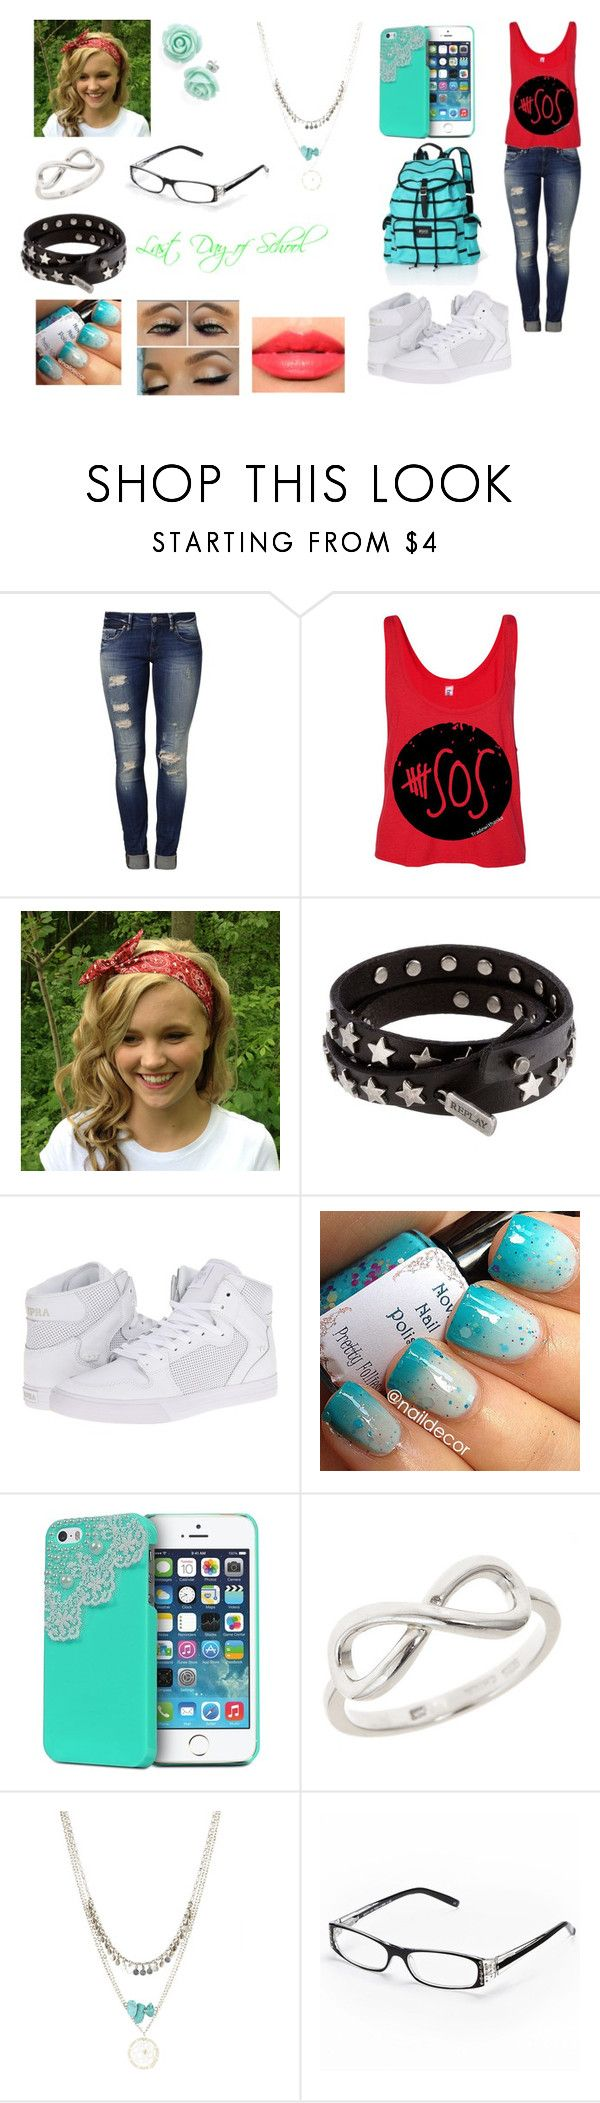 """Last Day of School"" by cherylkinberg97 ❤ liked on Polyvore featuring Mavi, Replay, Supra, INDIE HAIR, Christian Dior, Victoria's Secret, jeans, 5sos, hightops and glasses"